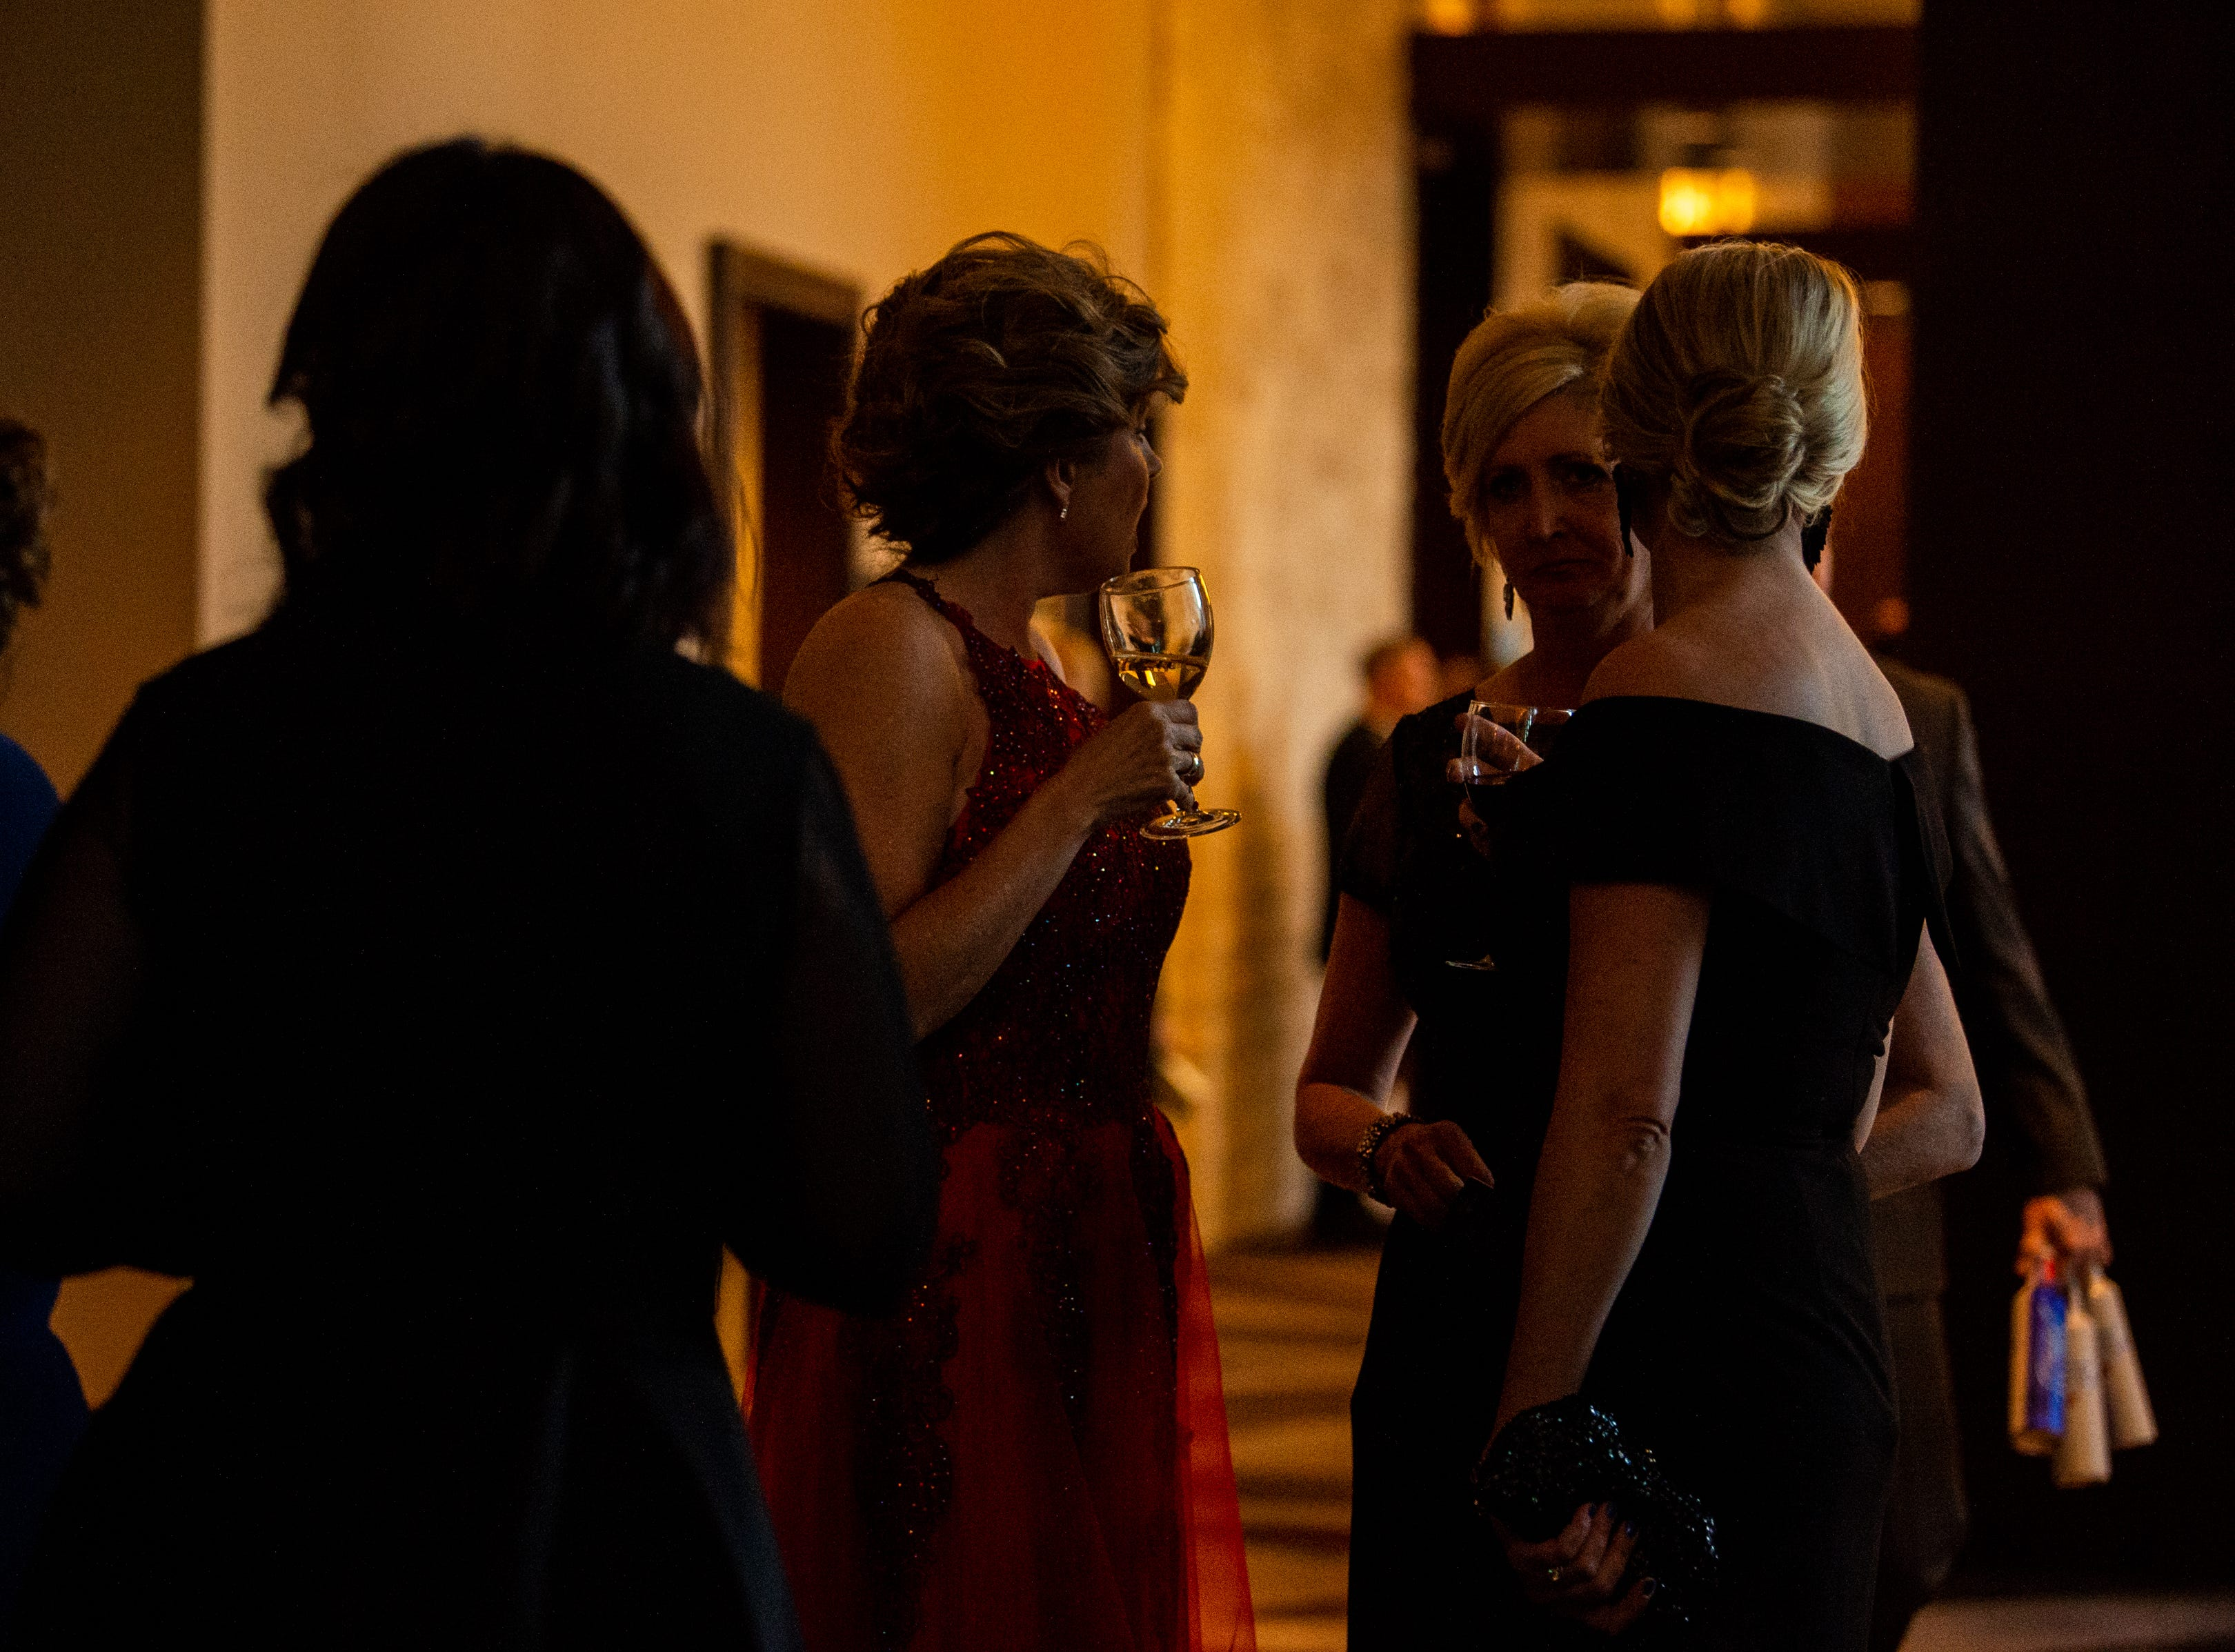 People gather for drinks before they enter the hall during Austin Peay State University's annual Candlelight Ball at the Omni Nashville Hotel Saturday, March 16, 2019, in Nashville, Tenn.